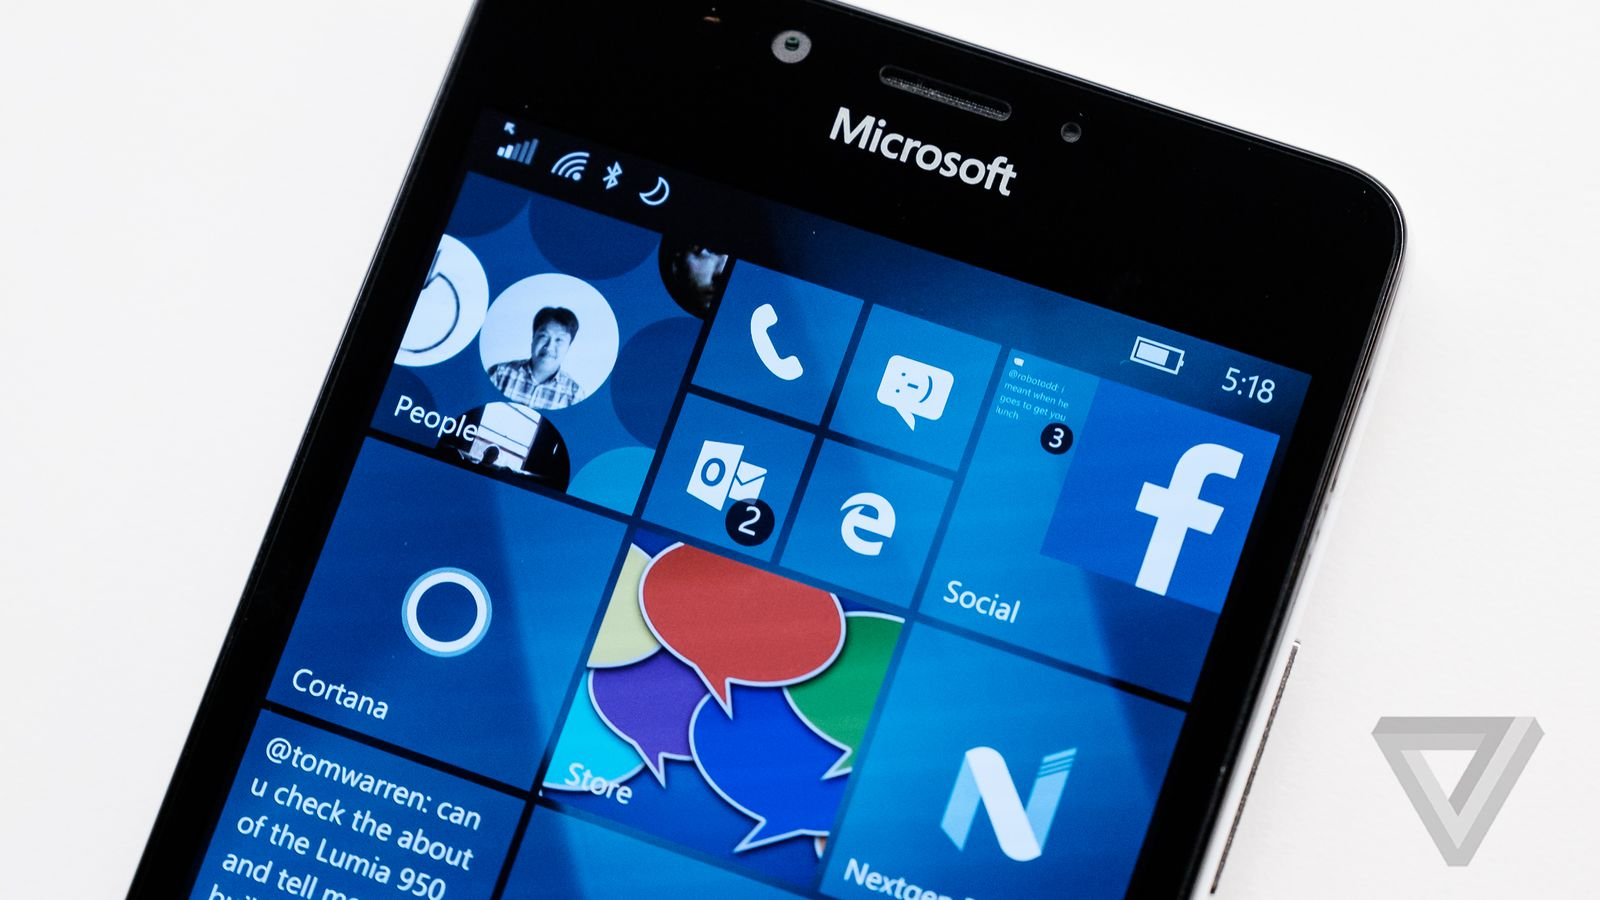 Microsoft begins rolling out Windows 10 Mobile Anniversary Update